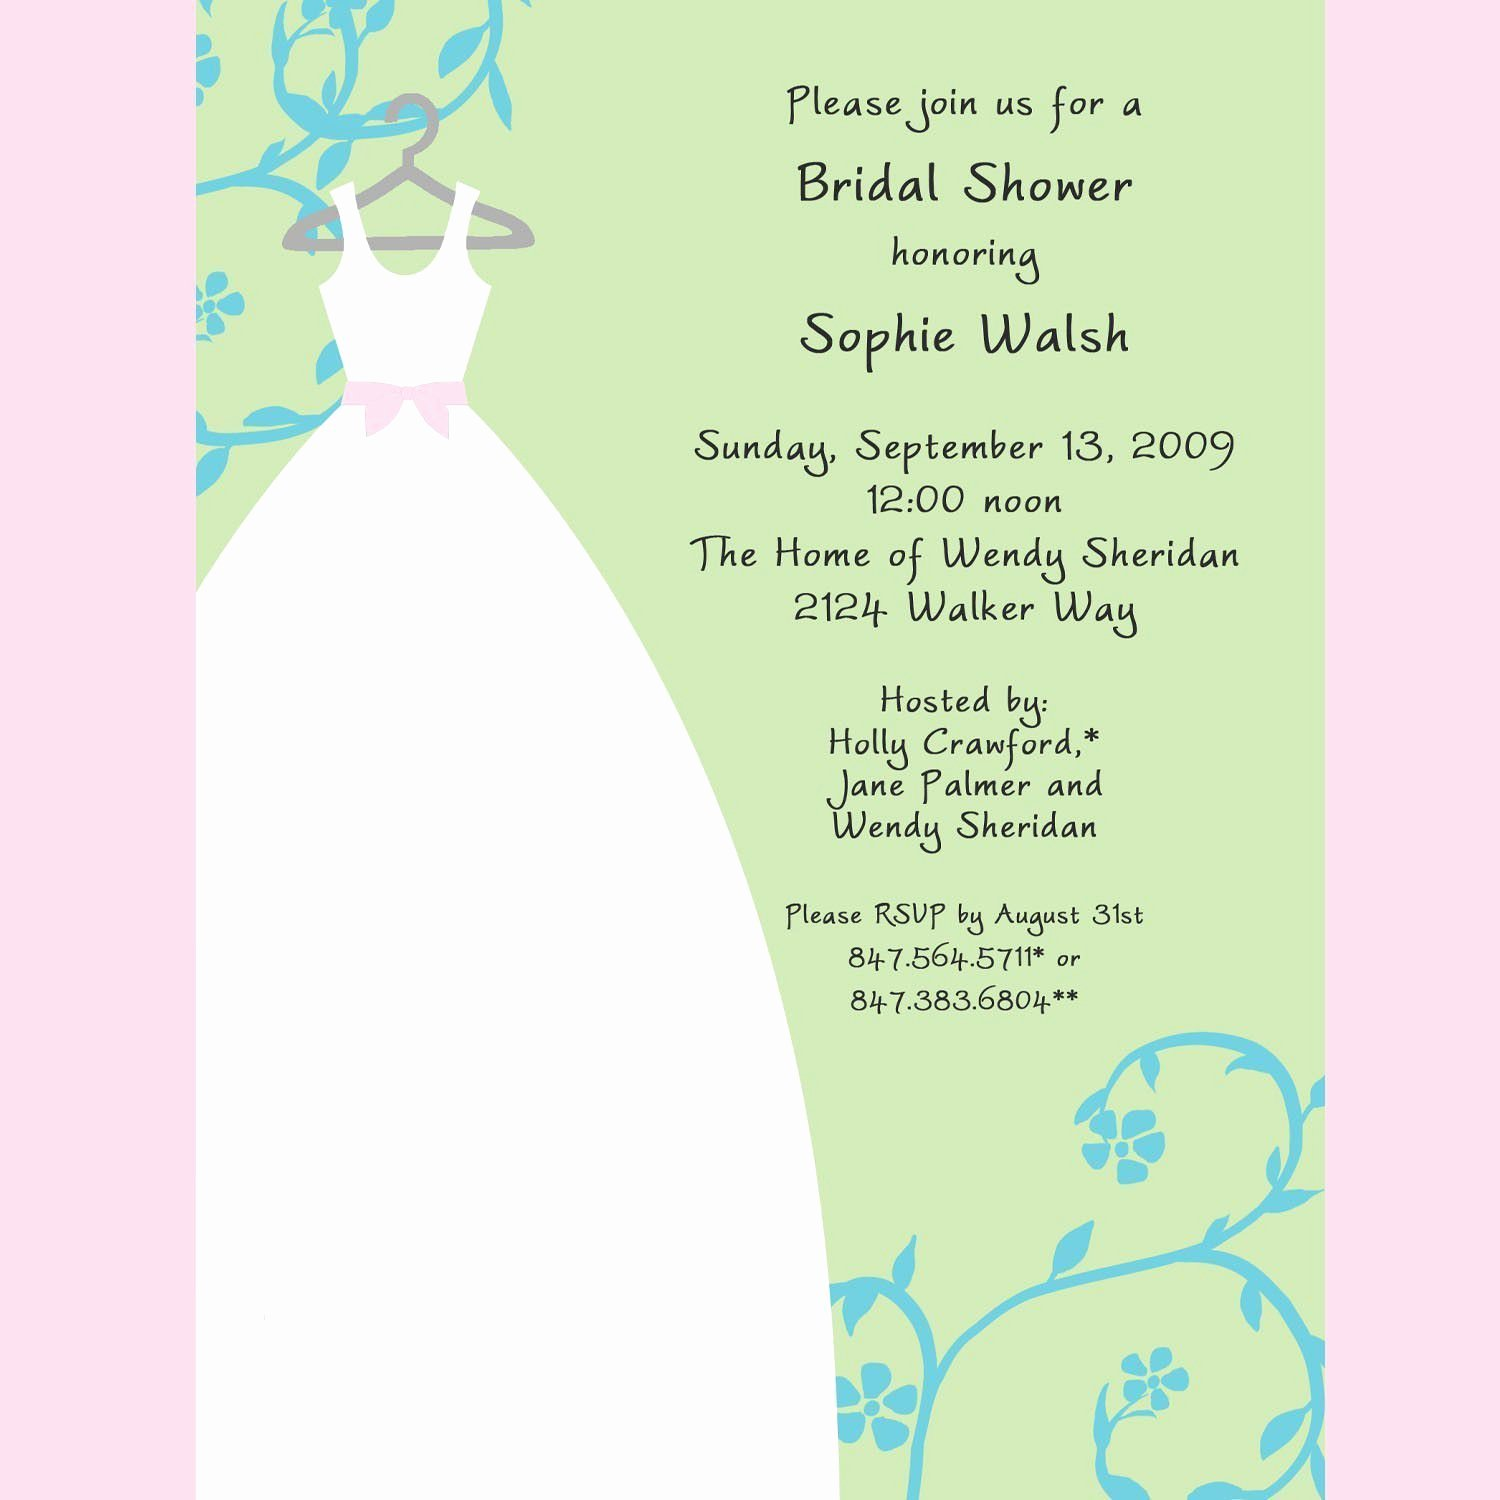 Bridal Shower Card Template Unique Bridal Shower Invitations Samples Bridal Shower